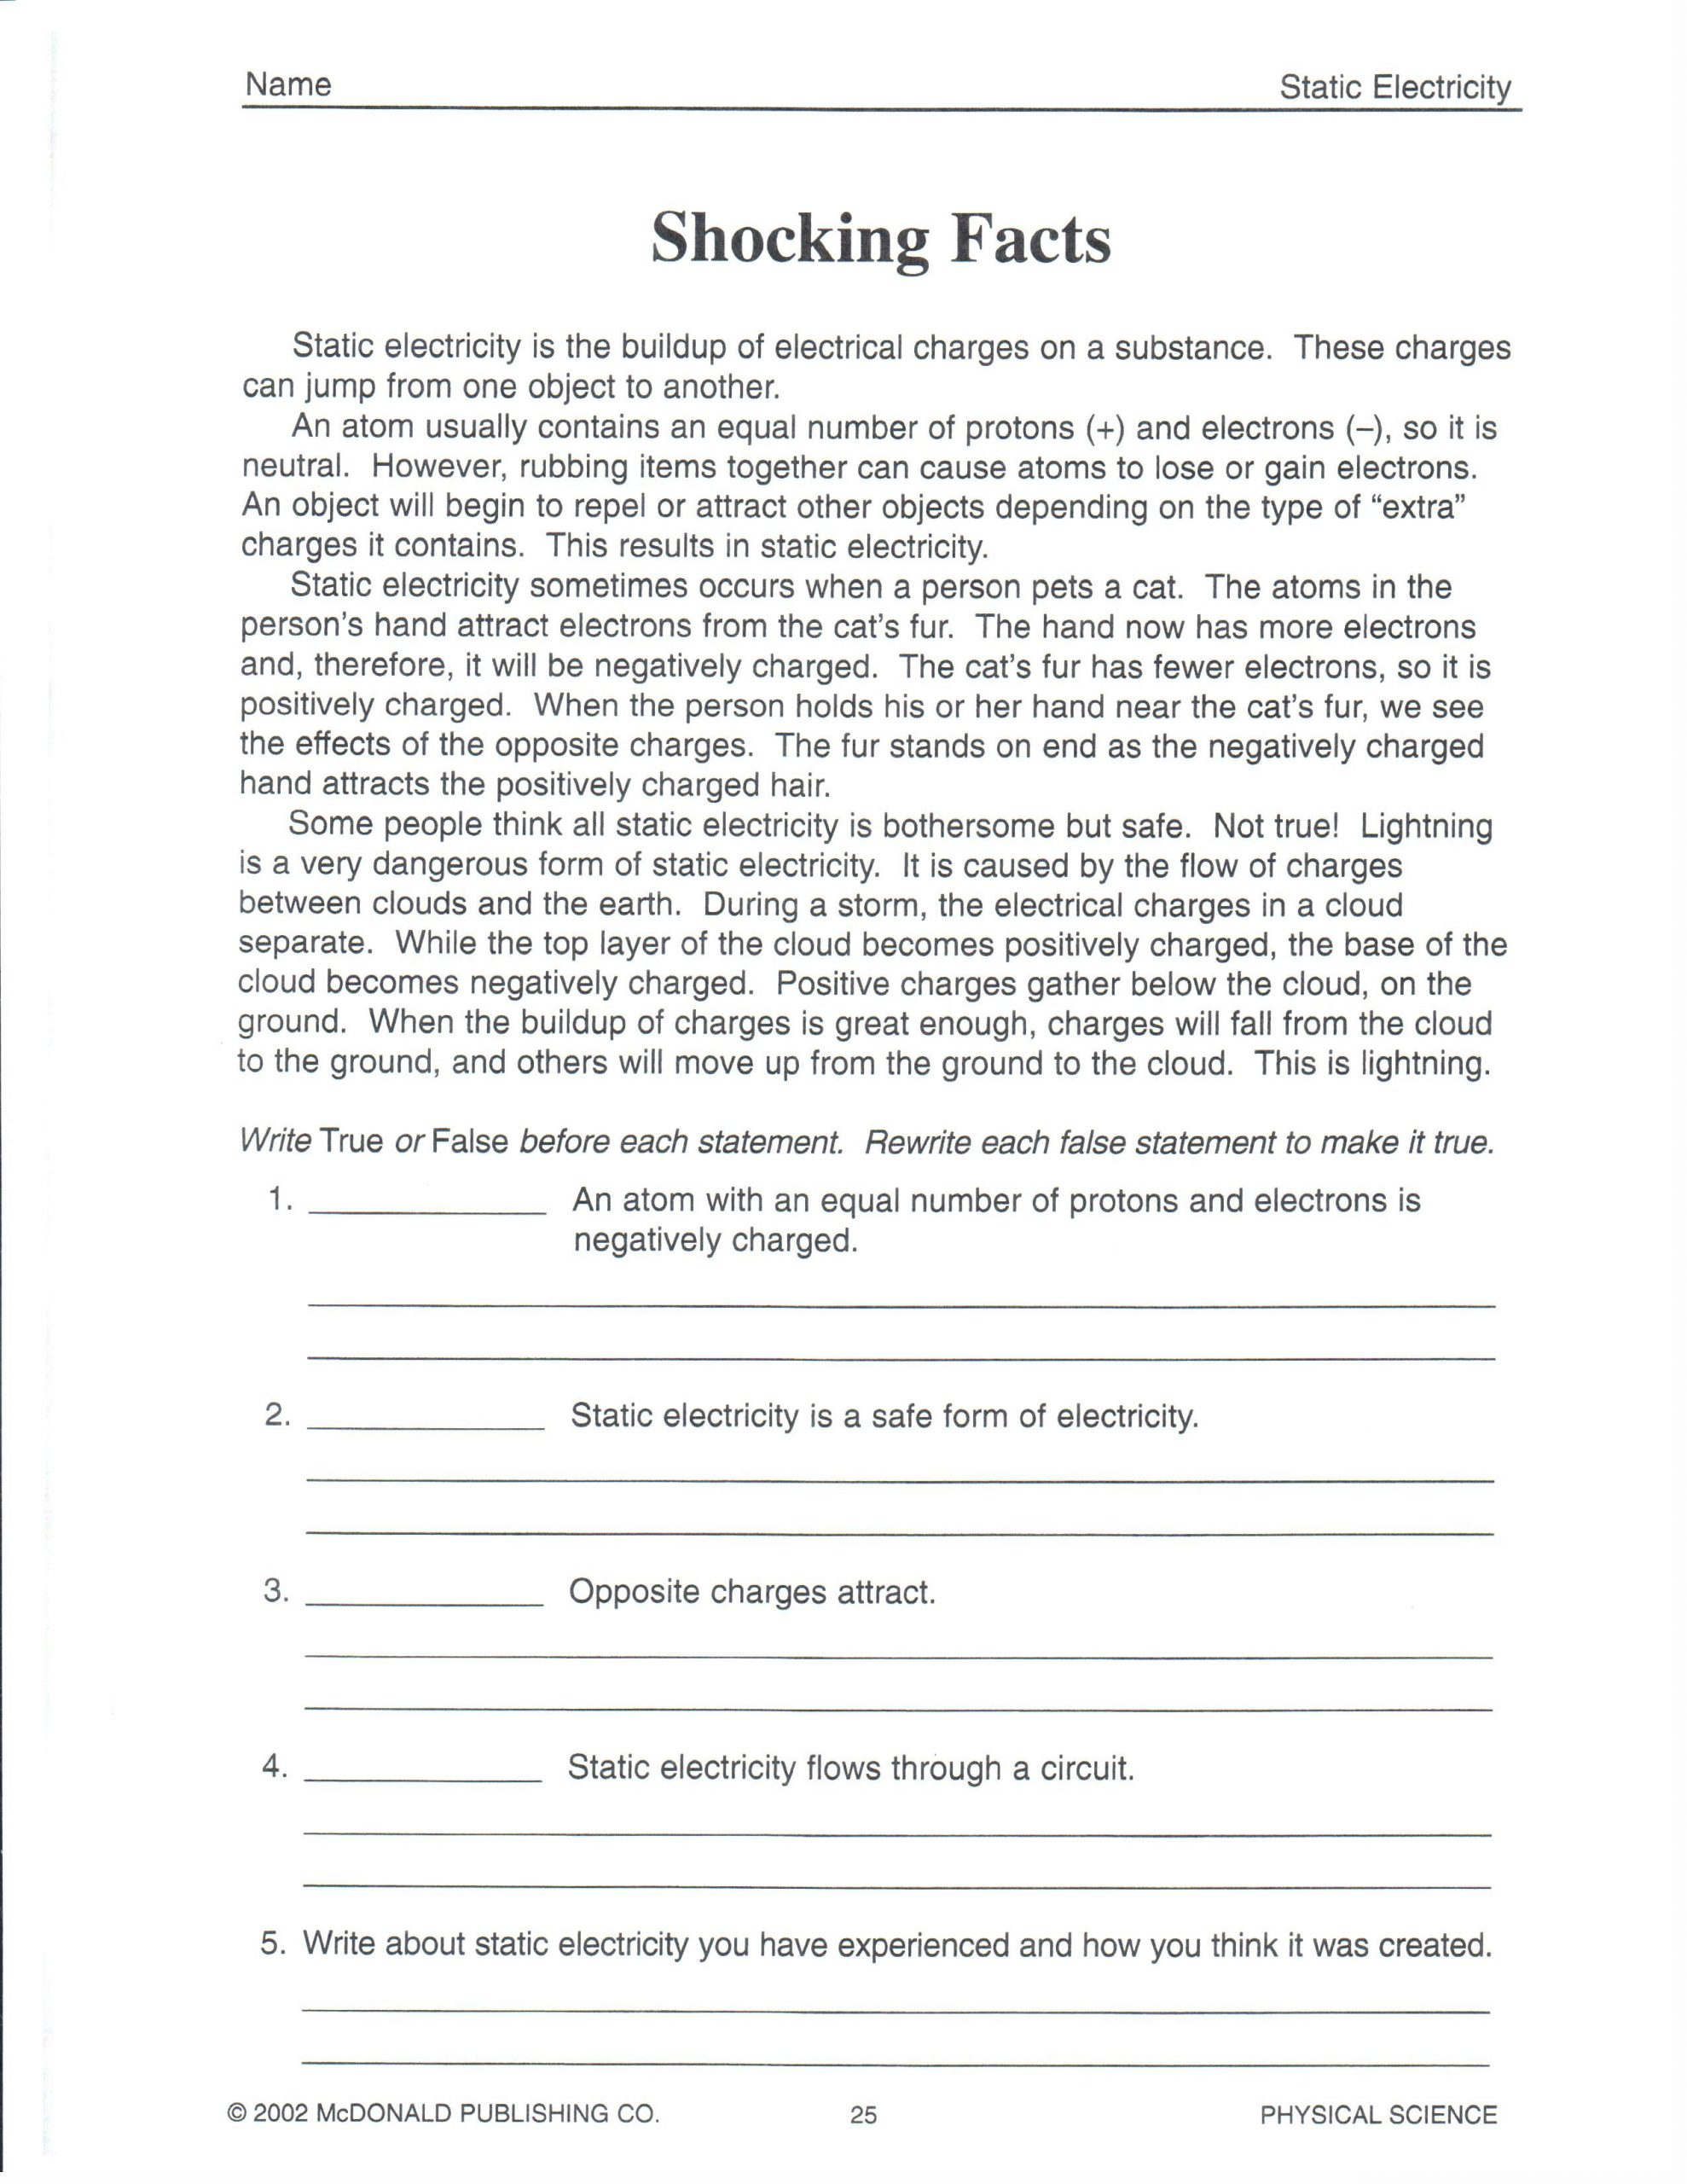 Science Worksheets for 8th Grade Physical Science February 2013